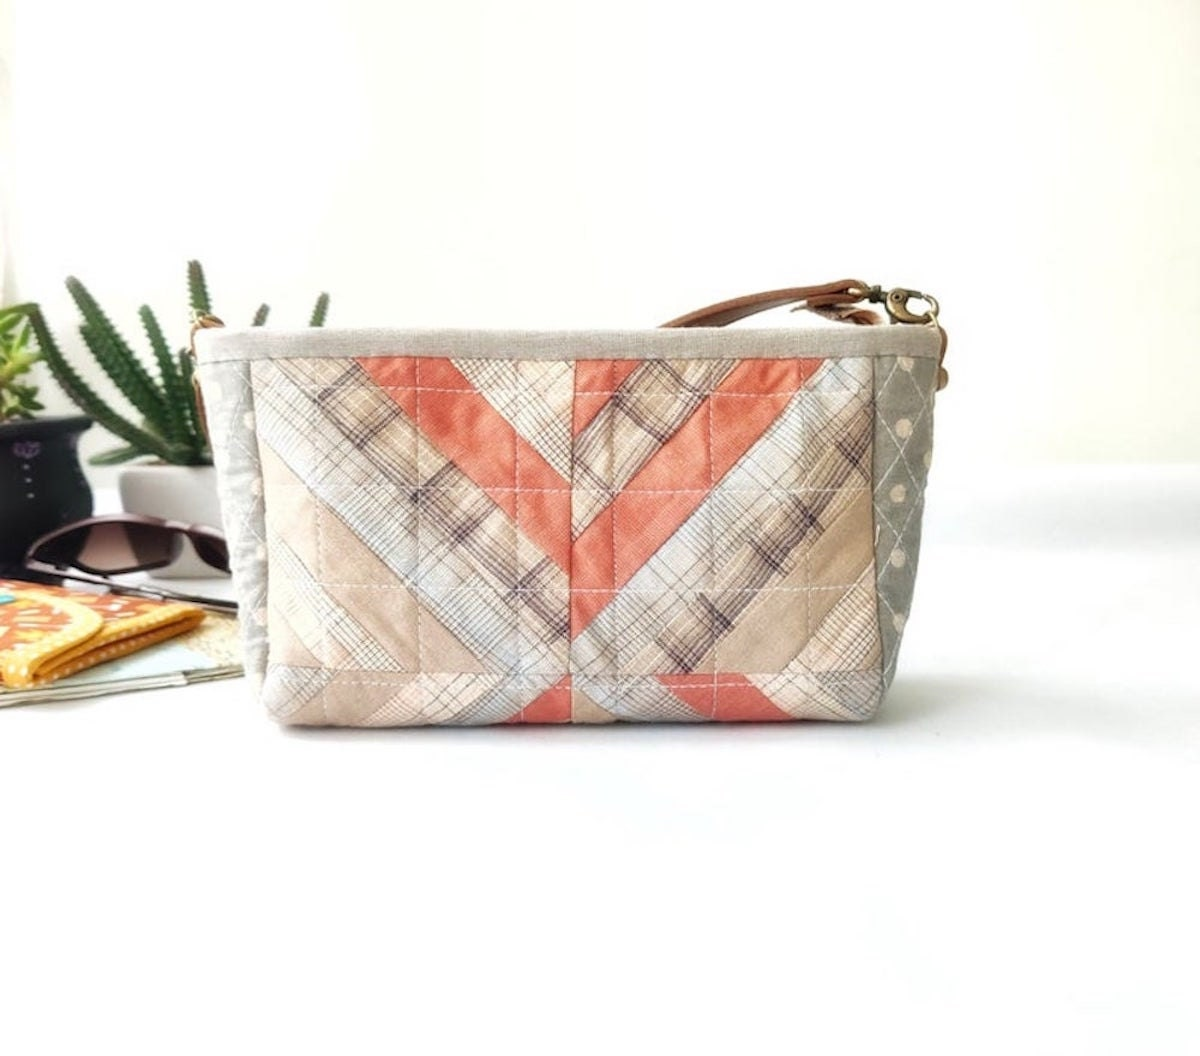 A quilted bag PDF pattern from Etsy